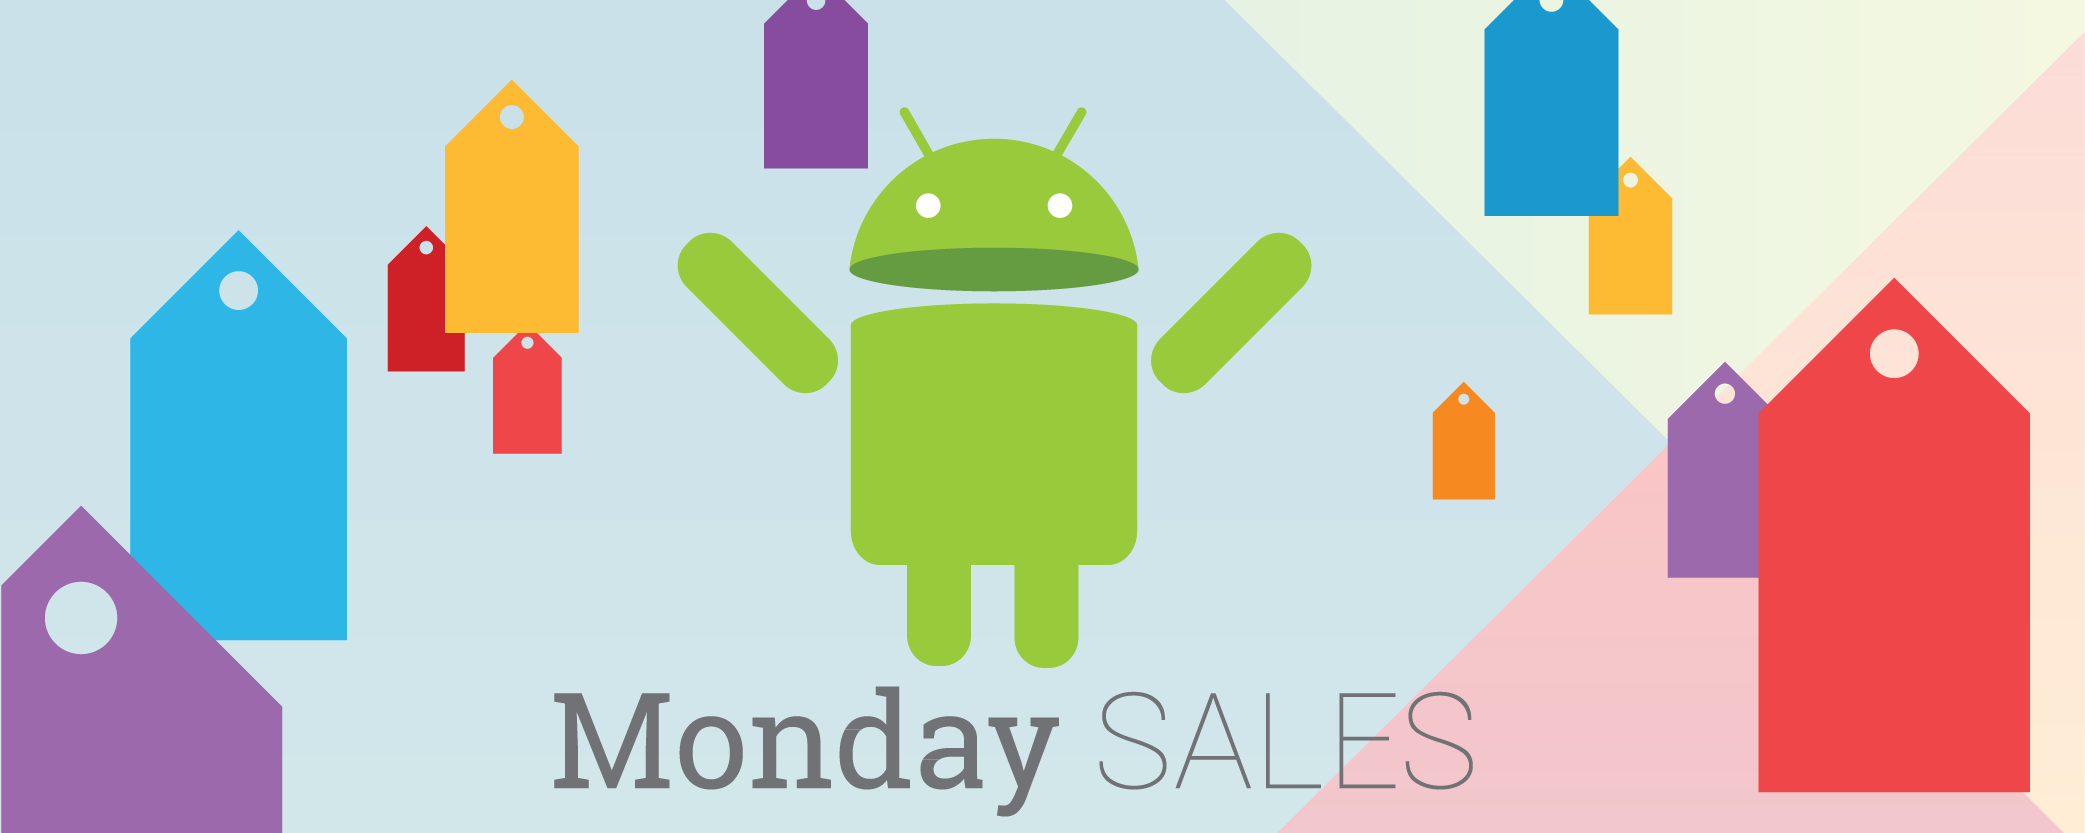 30 temporarily free and 47 on-sale apps and games for Monday